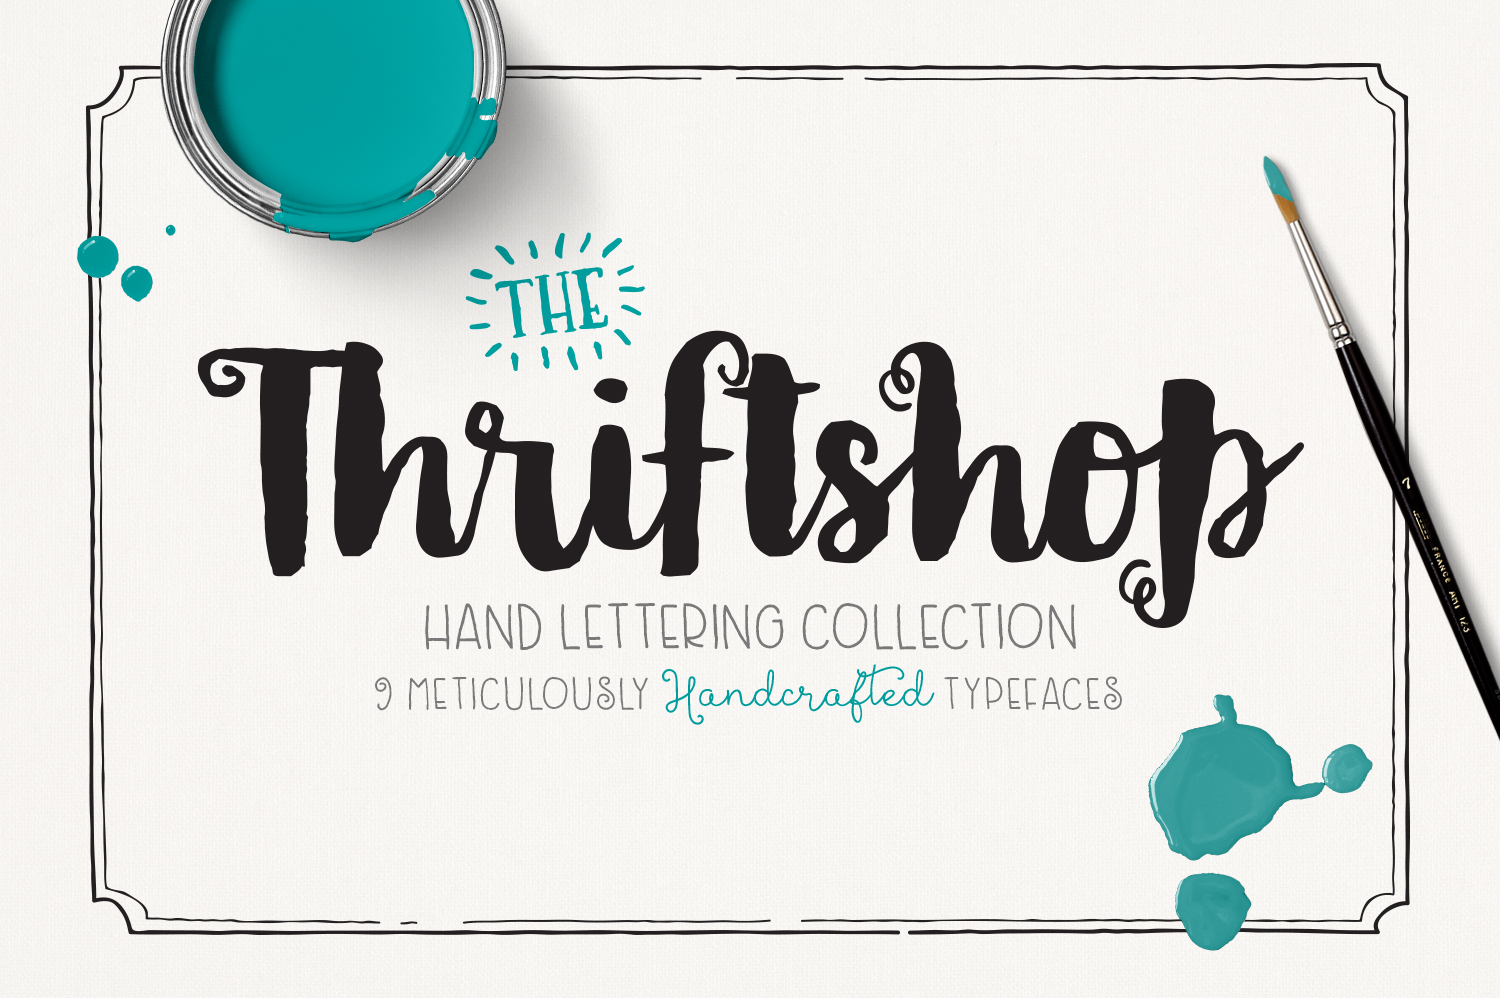 Thriftshop-Hand-Lettering-Collection